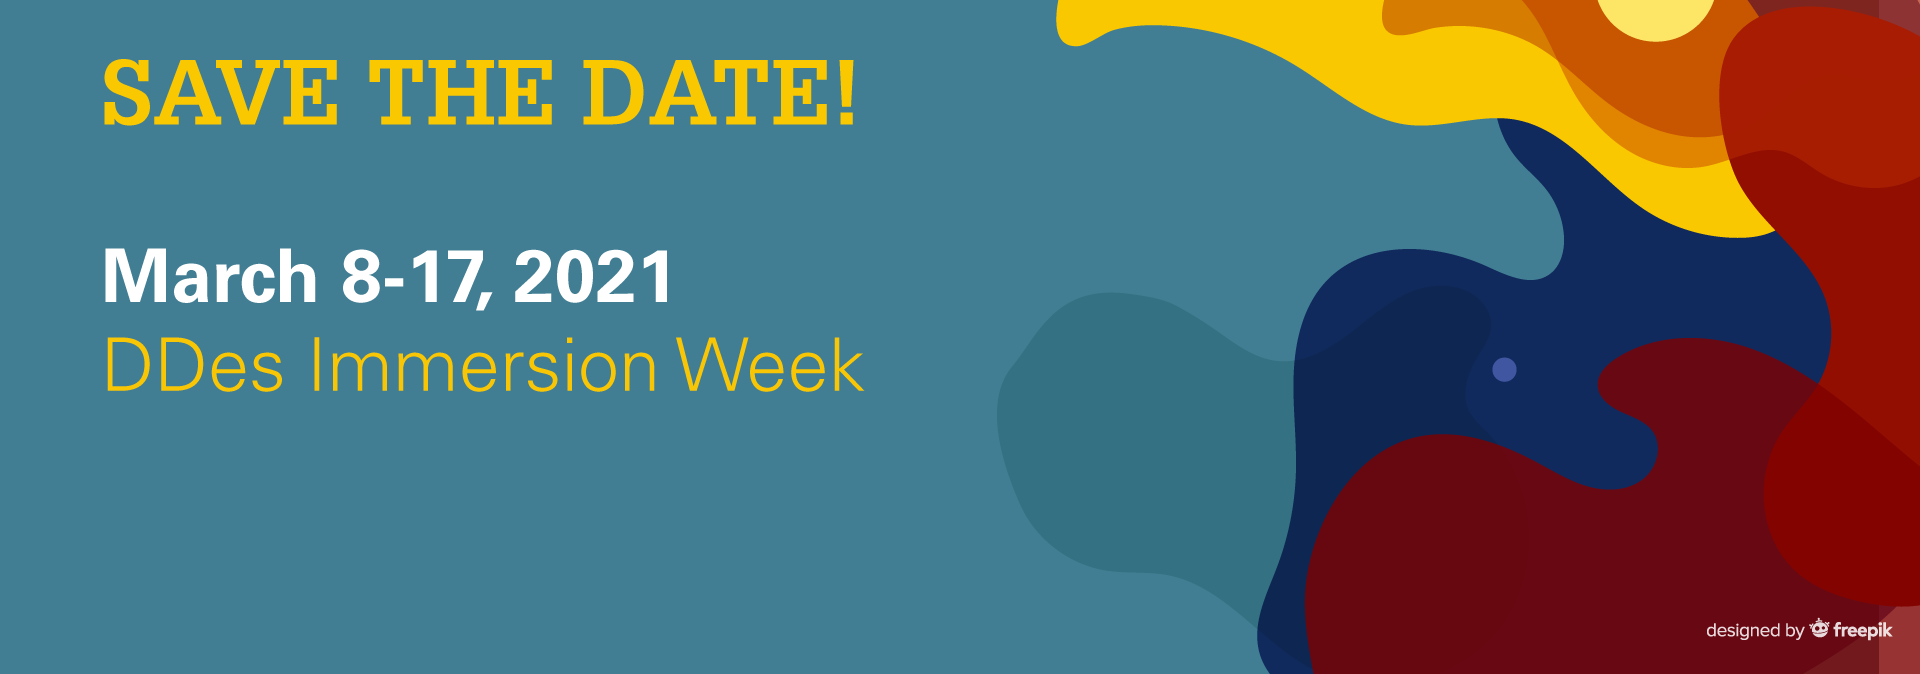 Save the Date for DDes Immersion Week